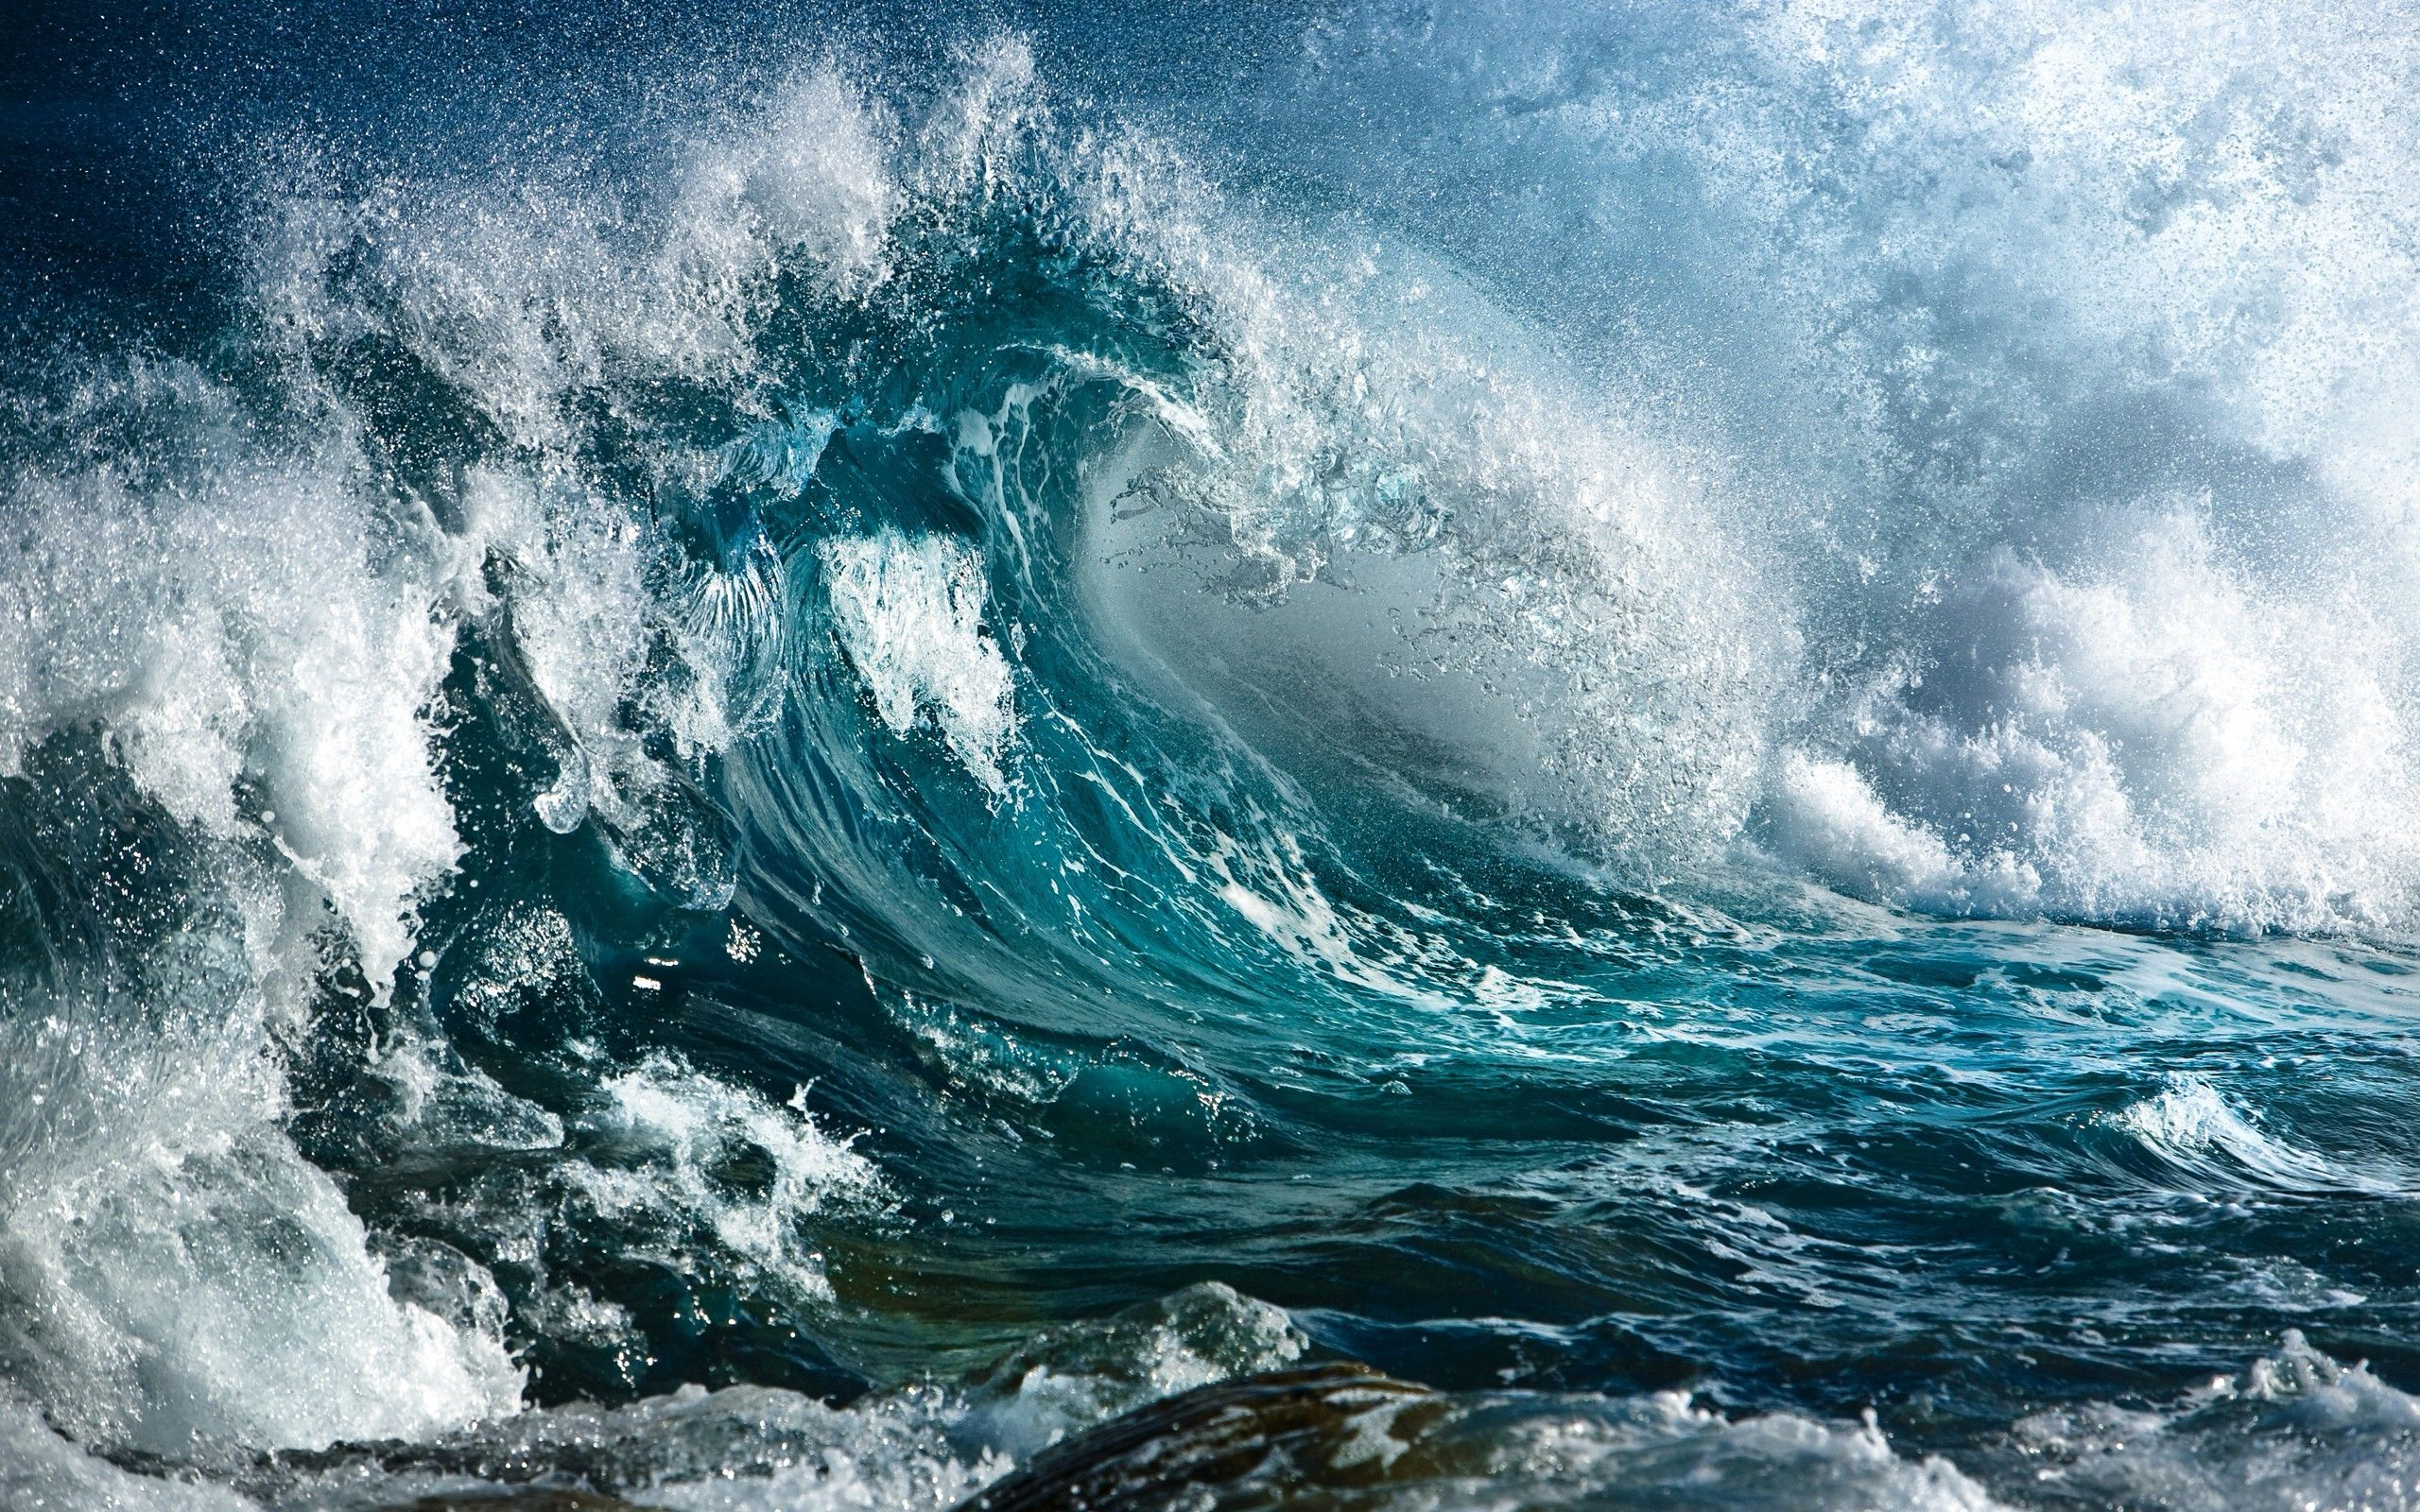 Big Waves On The Sea Landscape Water Download Beautiful Hd Wallpaper 1080p 2160p Uhd 4k Hd For Ios Devices Iphone Android In 2020 Ocean Waves Waves Sea Waves